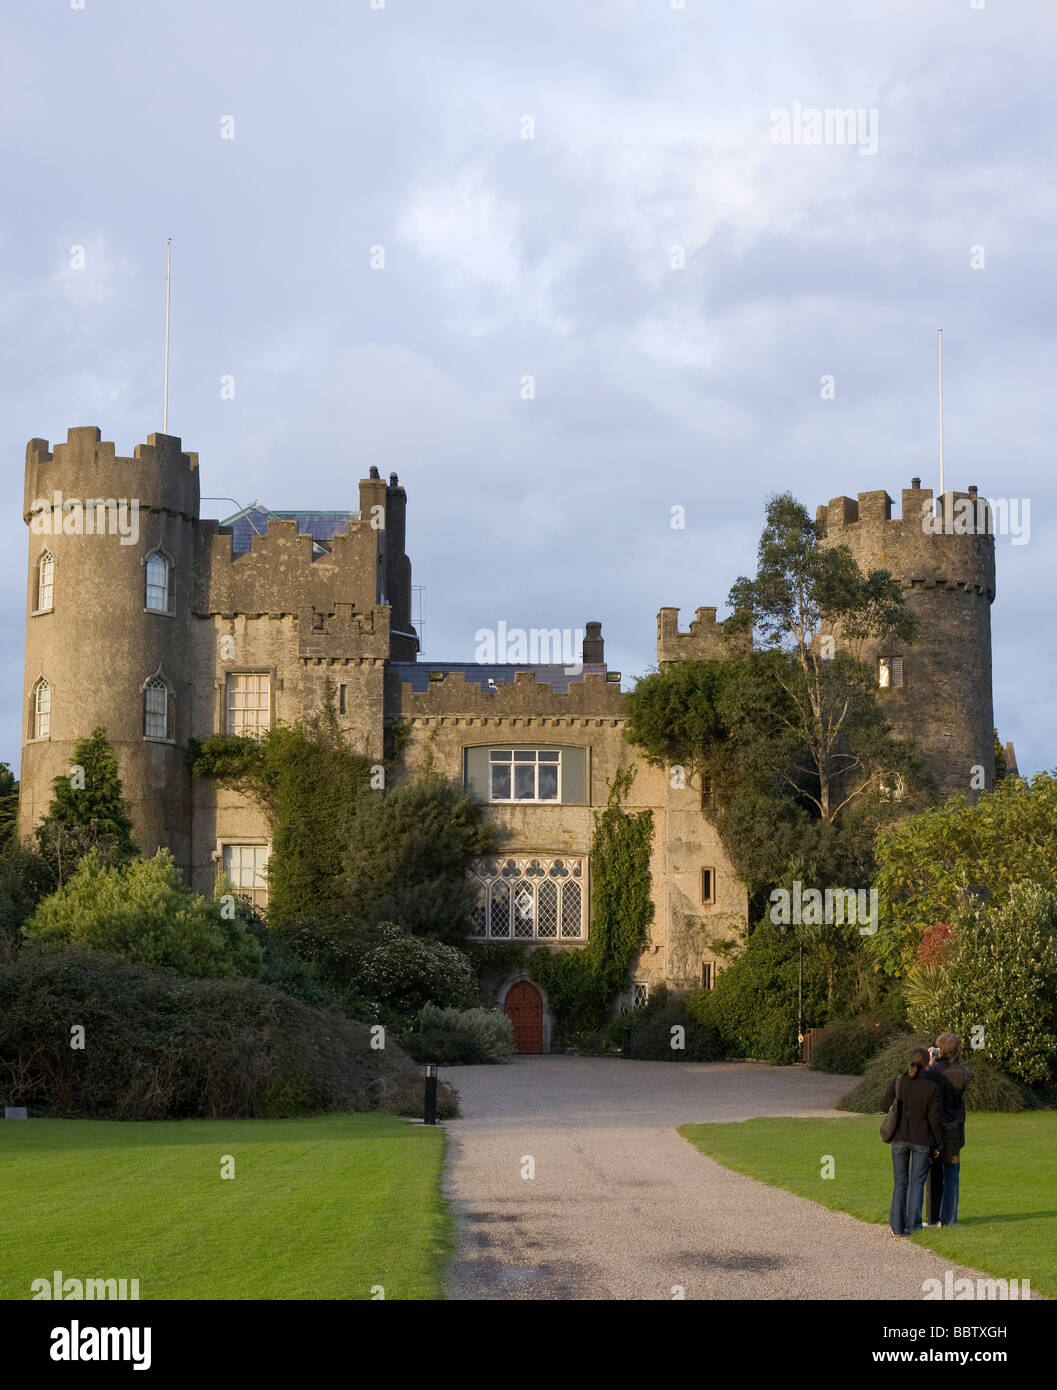 Malahide Castle with Tourists. The turreted castle at Malahide, seat of the Talbots is photographed by a pair of - Stock Image